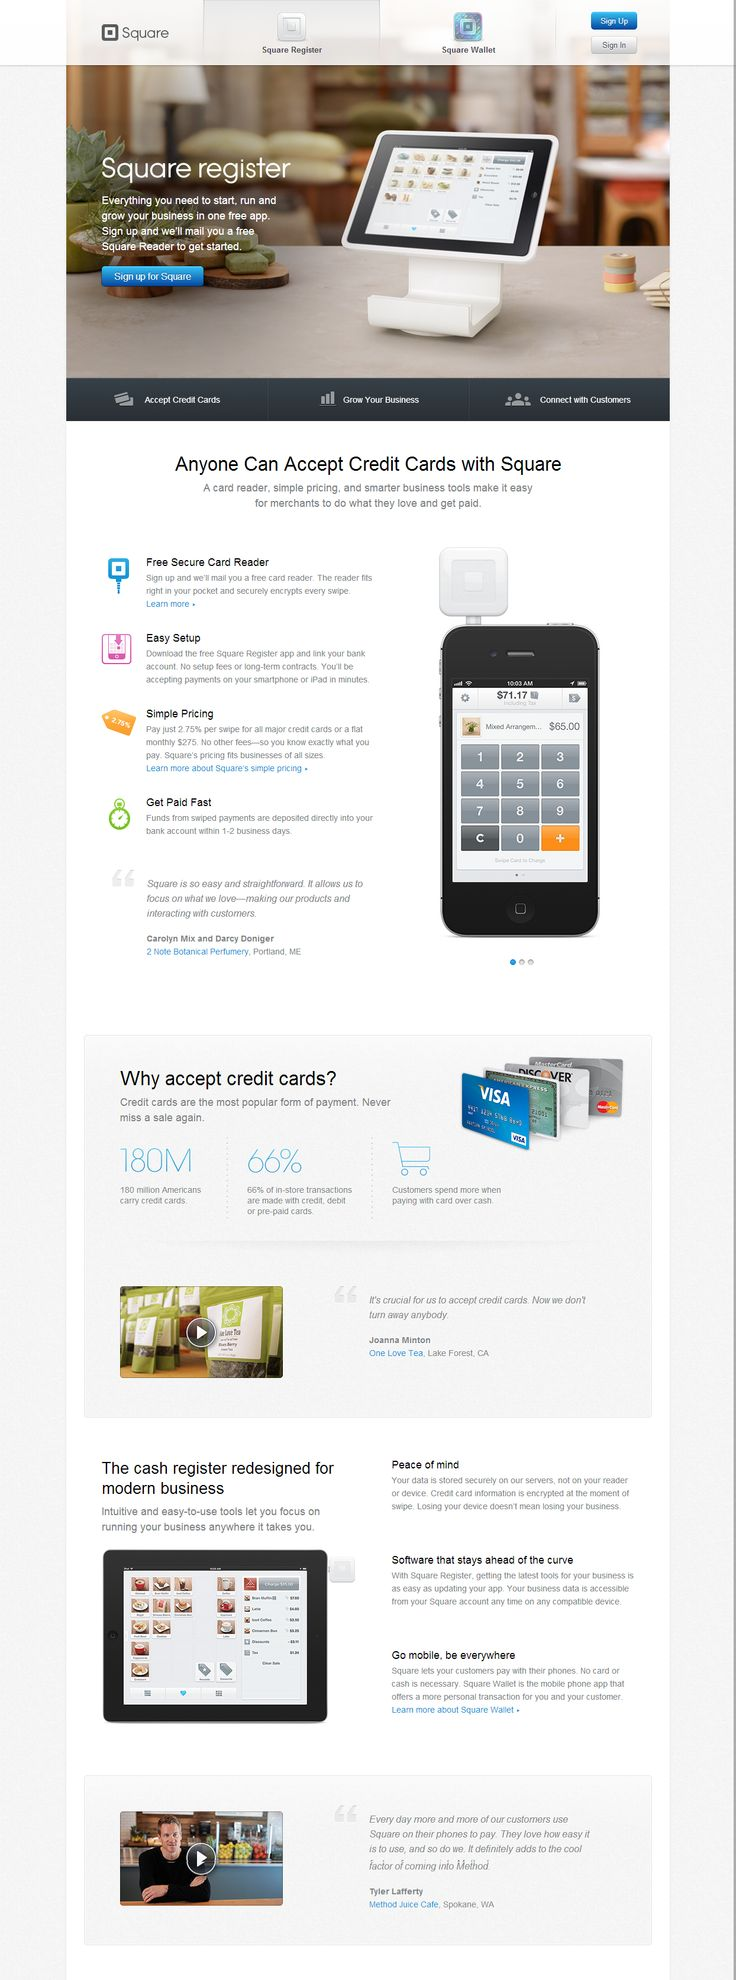 The 45 best squareup landingpage images on pinterest screens 1 pos system point of sale software with no monthly fee reheart Image collections